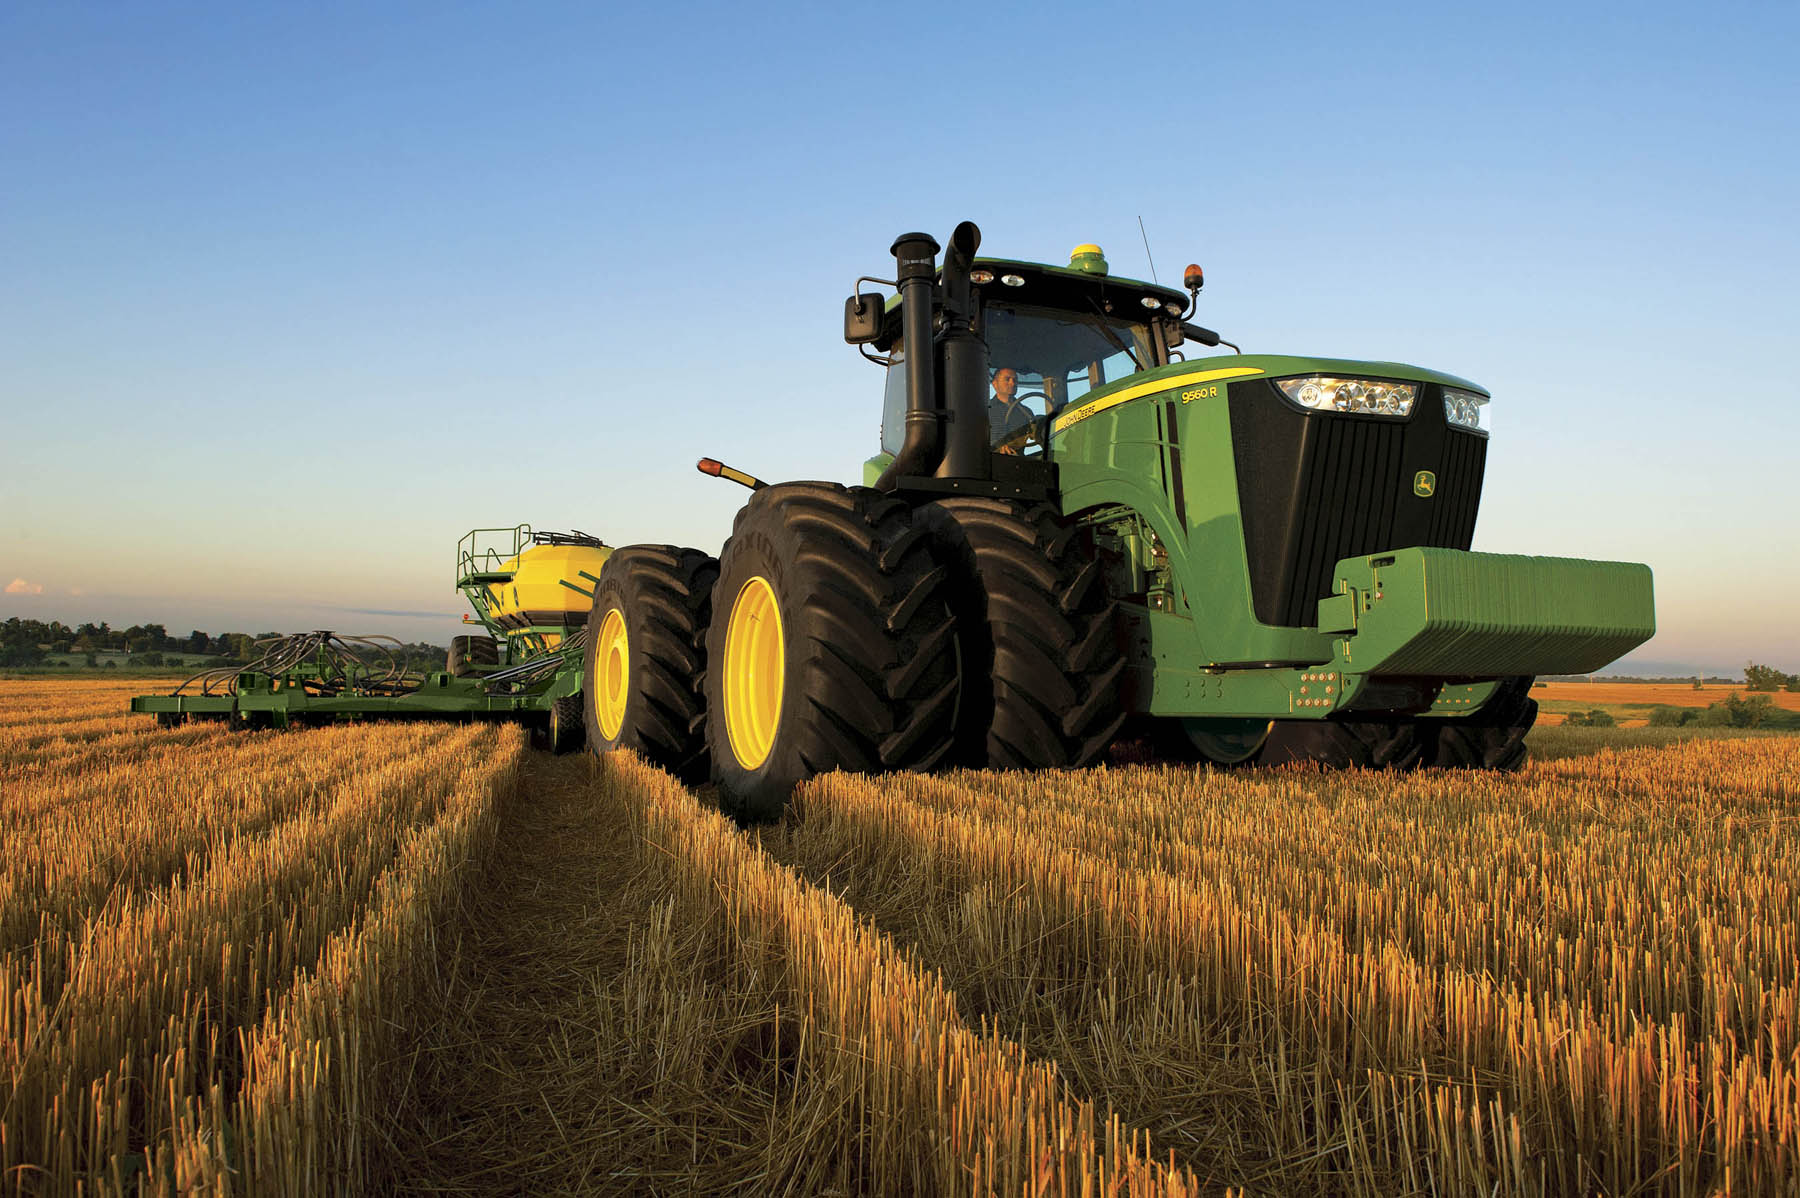 John Deere Tractor Models Visual Guide